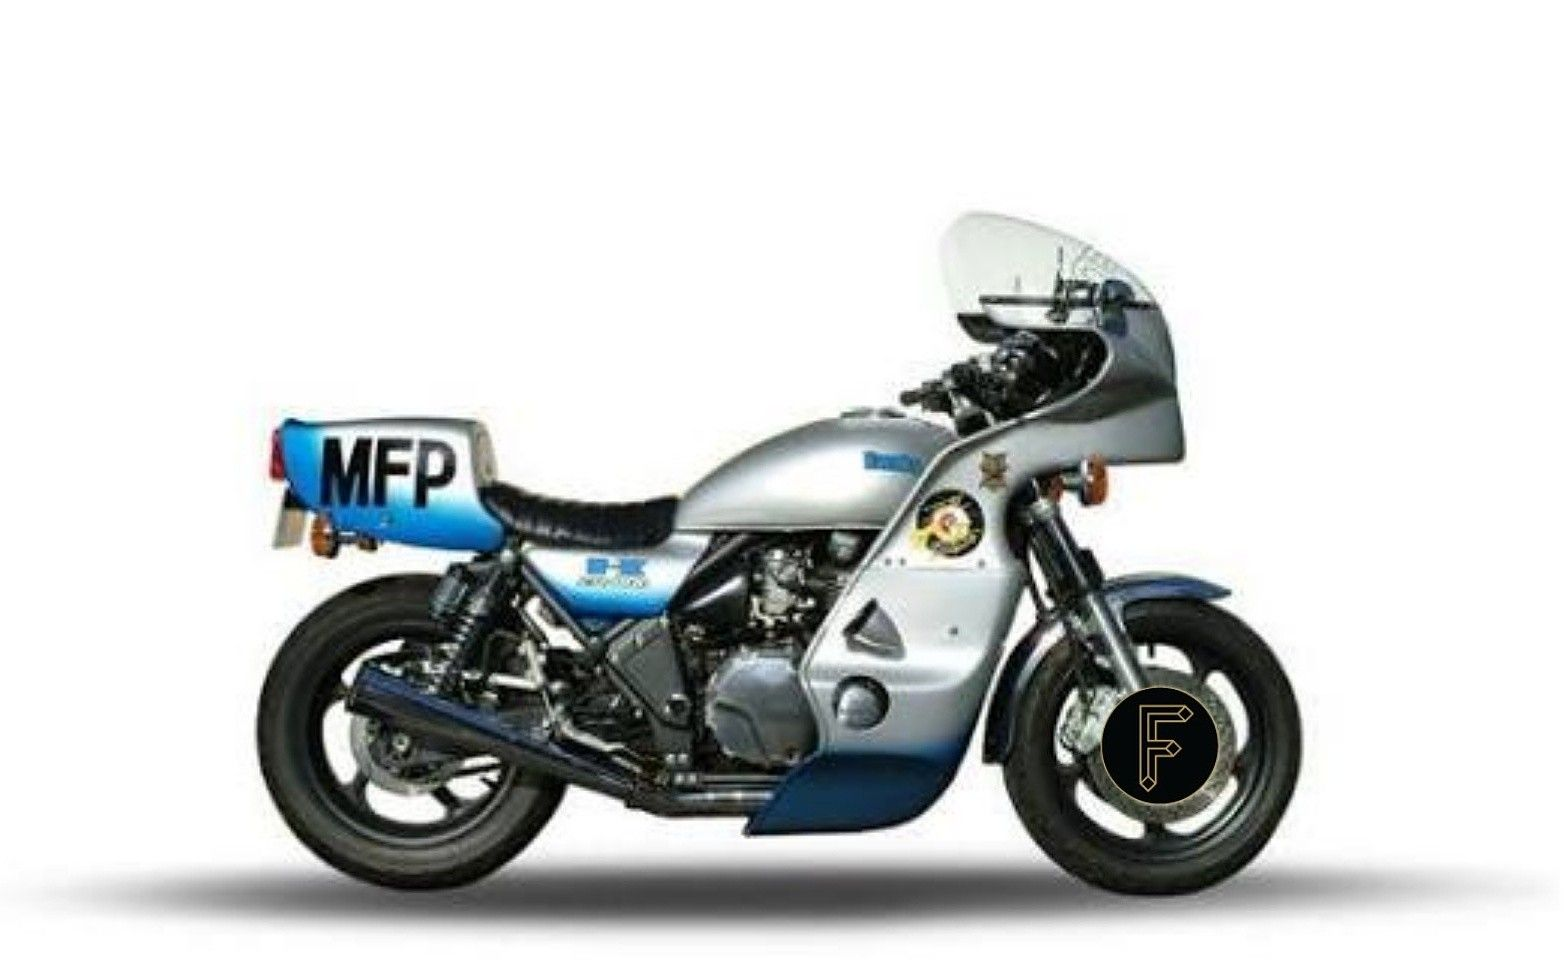 hight resolution of moto legends the most iconic motorcycles from fiction 1977 kawasaki kz1000p mad max 1979 firemotorcycle motolegend kawasaki